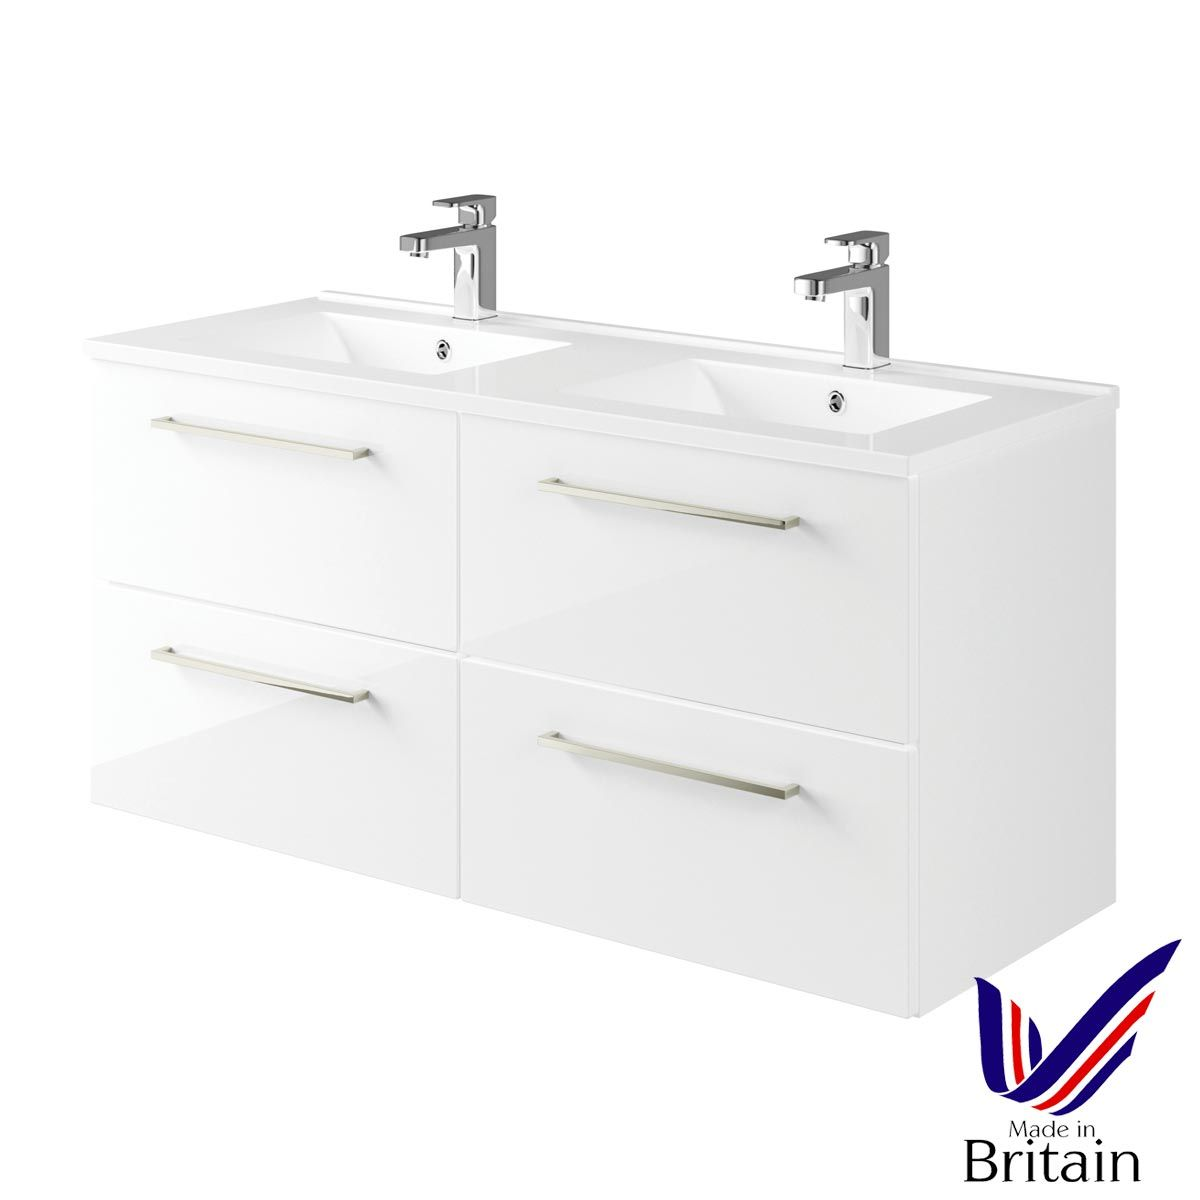 Mito White Gloss Wall Hung Double Vanity Unit 1200mm